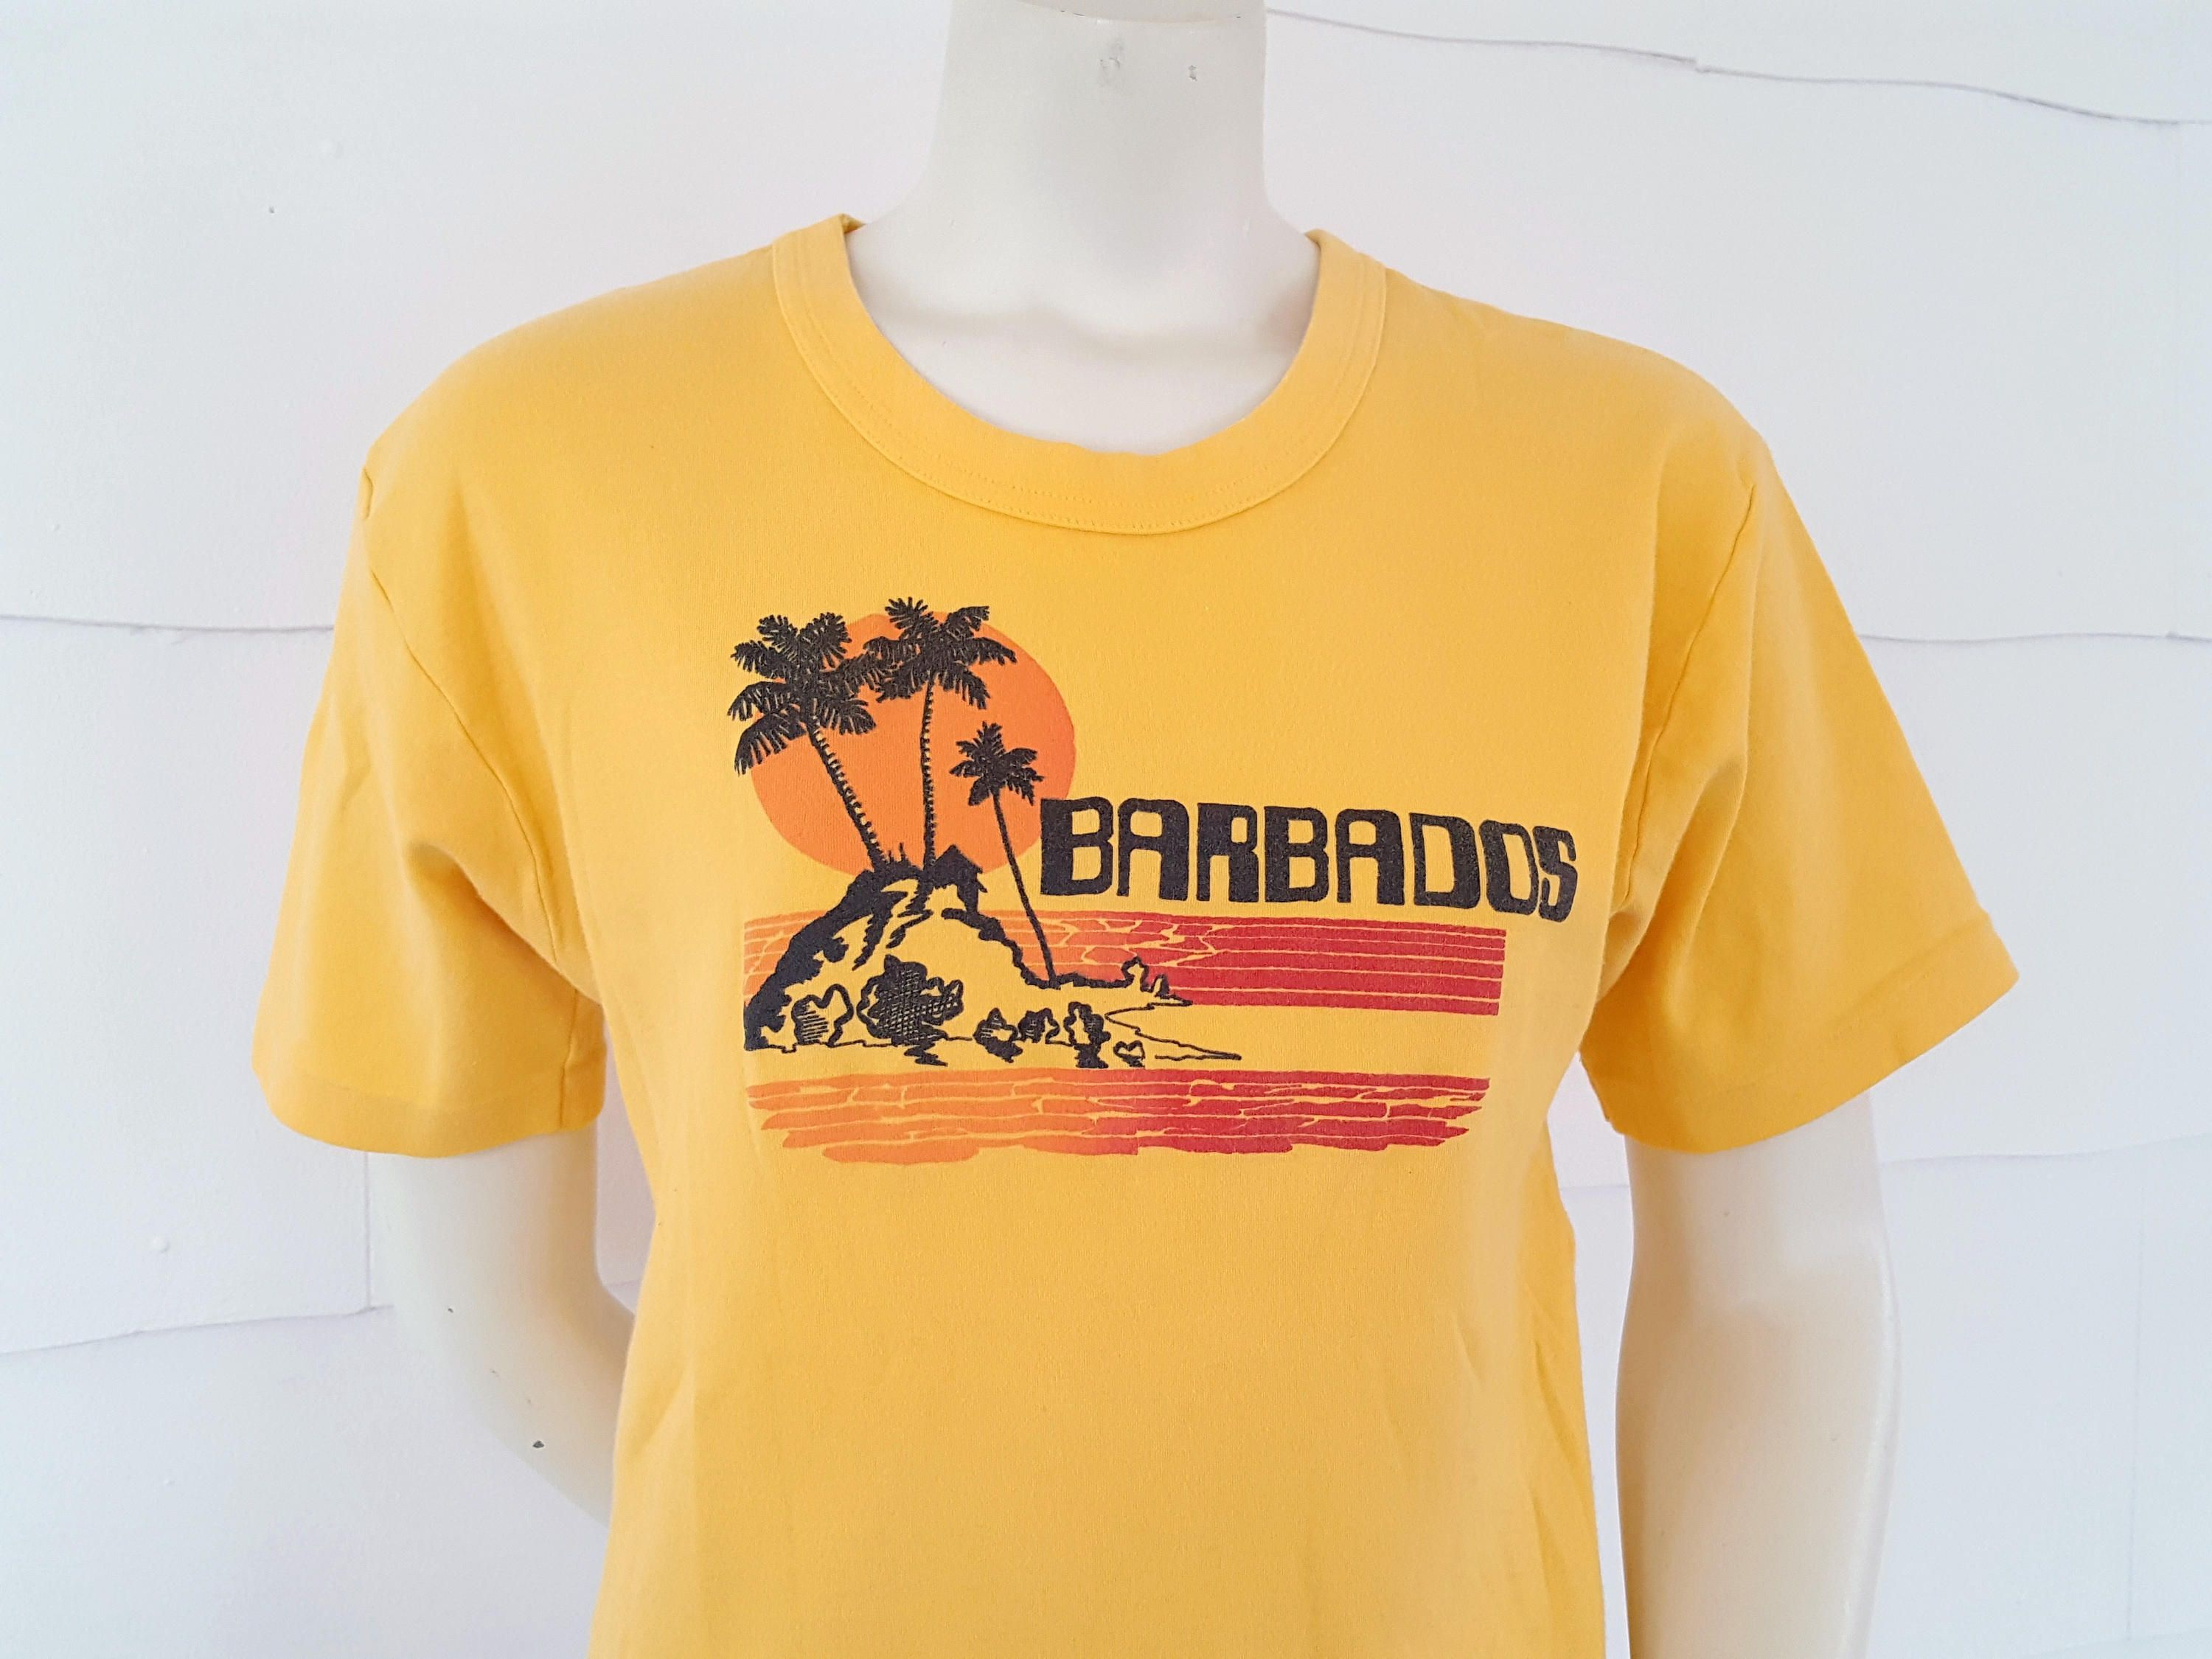 2d1c46037 80s Vintage Barbados T Shirt Bright Tropical Vacation Caribbean Island Souvenir  Tee Palm Trees Ocean by MODernThrowback on Etsy